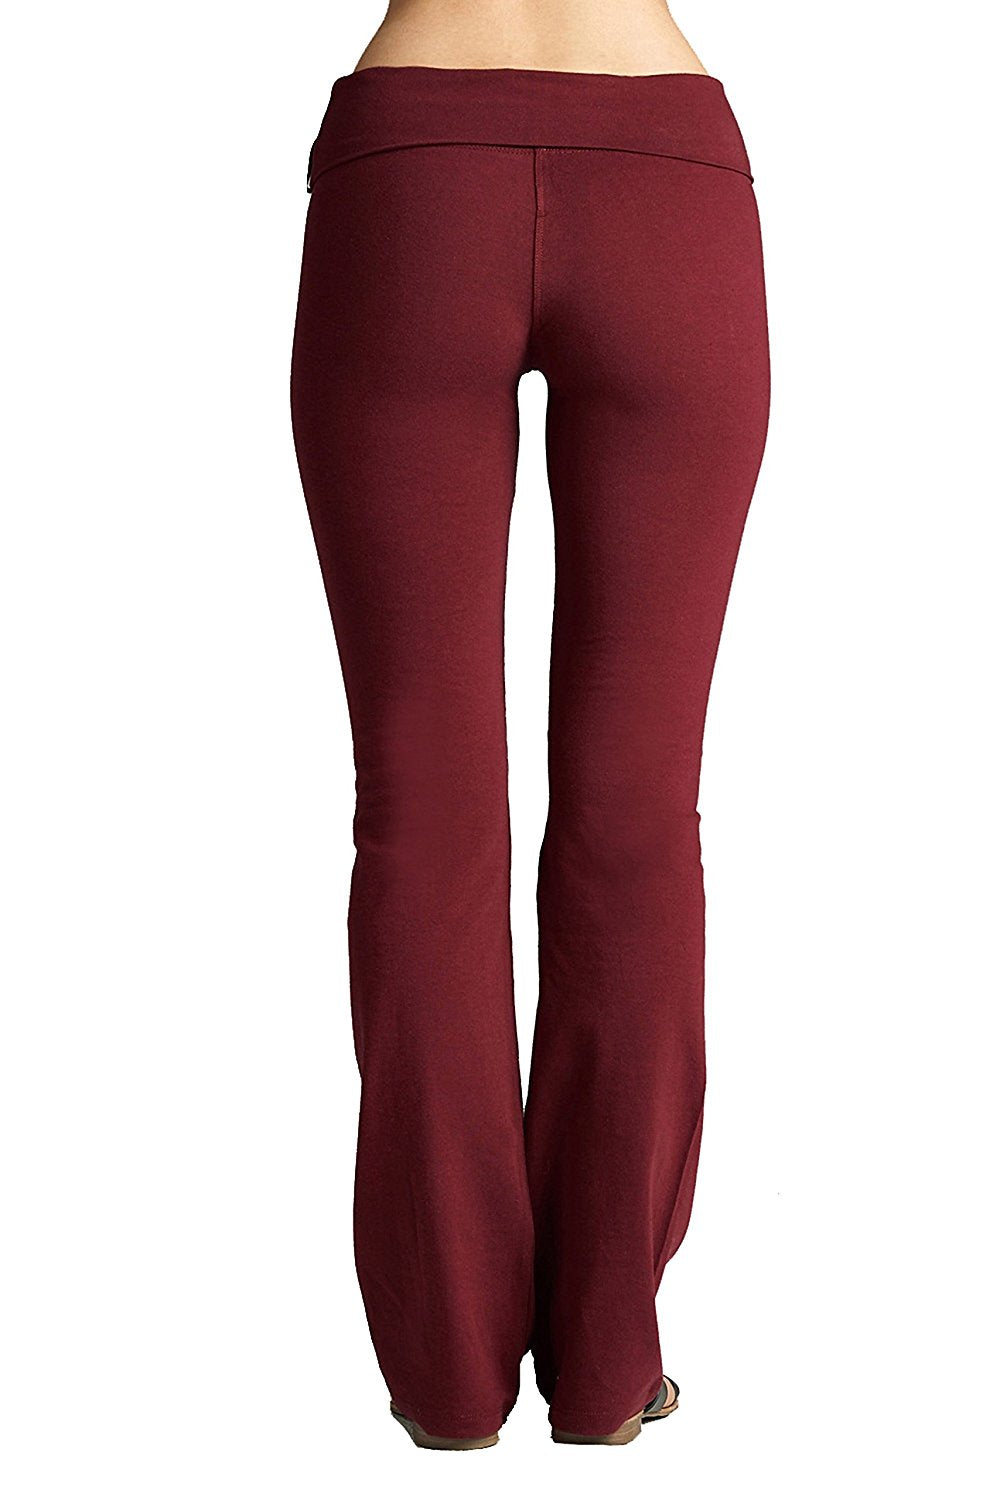 Hollywood Star Fashion Solid Foldover Solid Bootleg Flare Yoga Pants